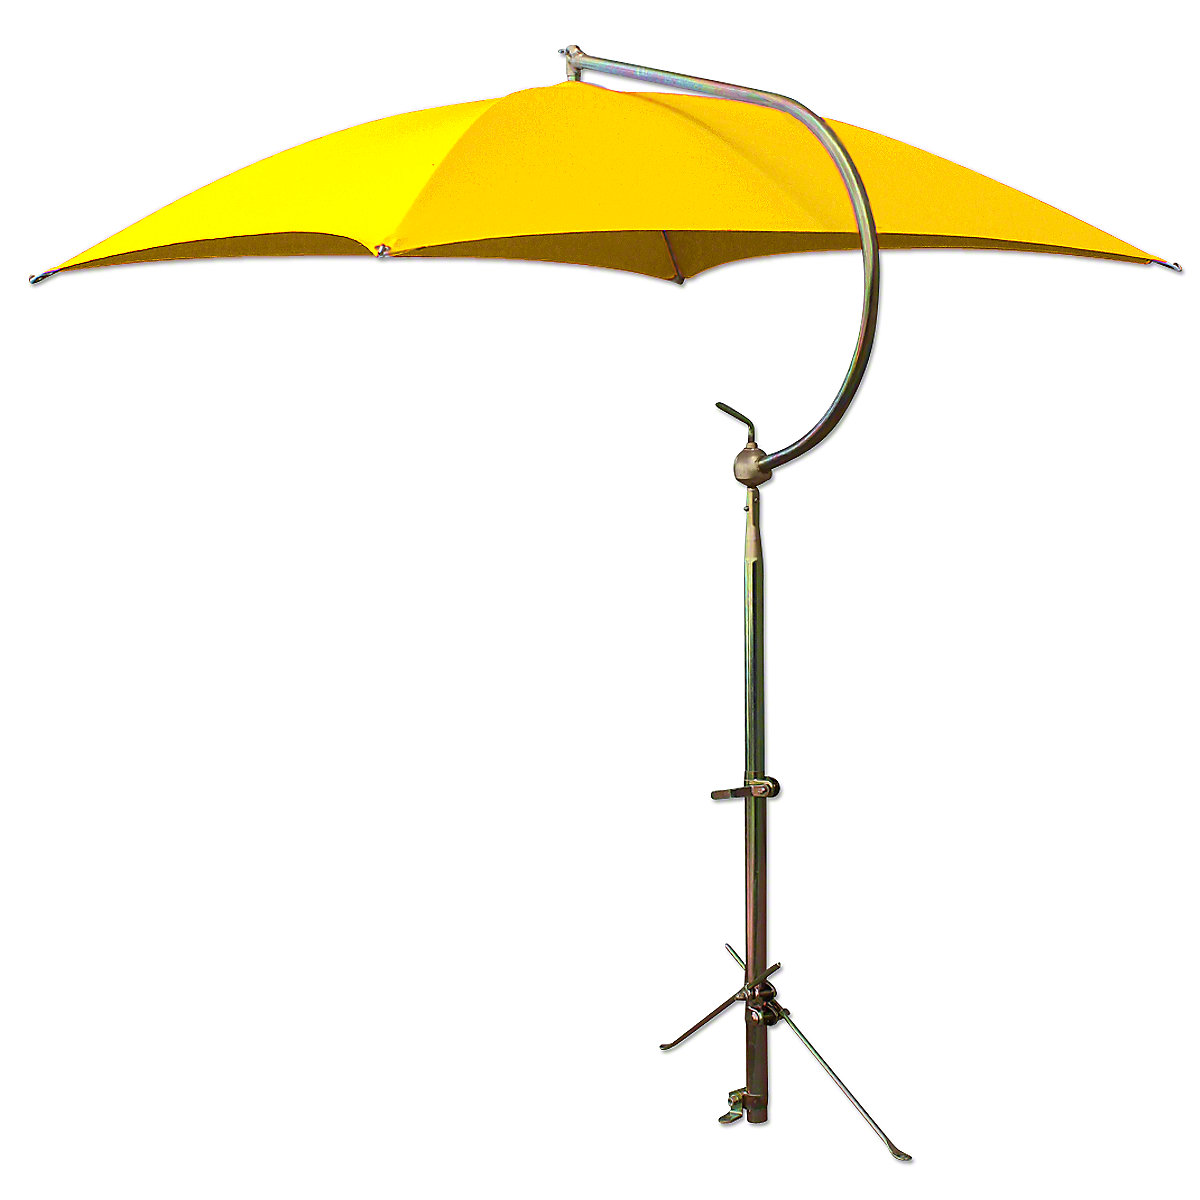 Deluxe Yellow Tractor Umbrella With Mounting Brackets.